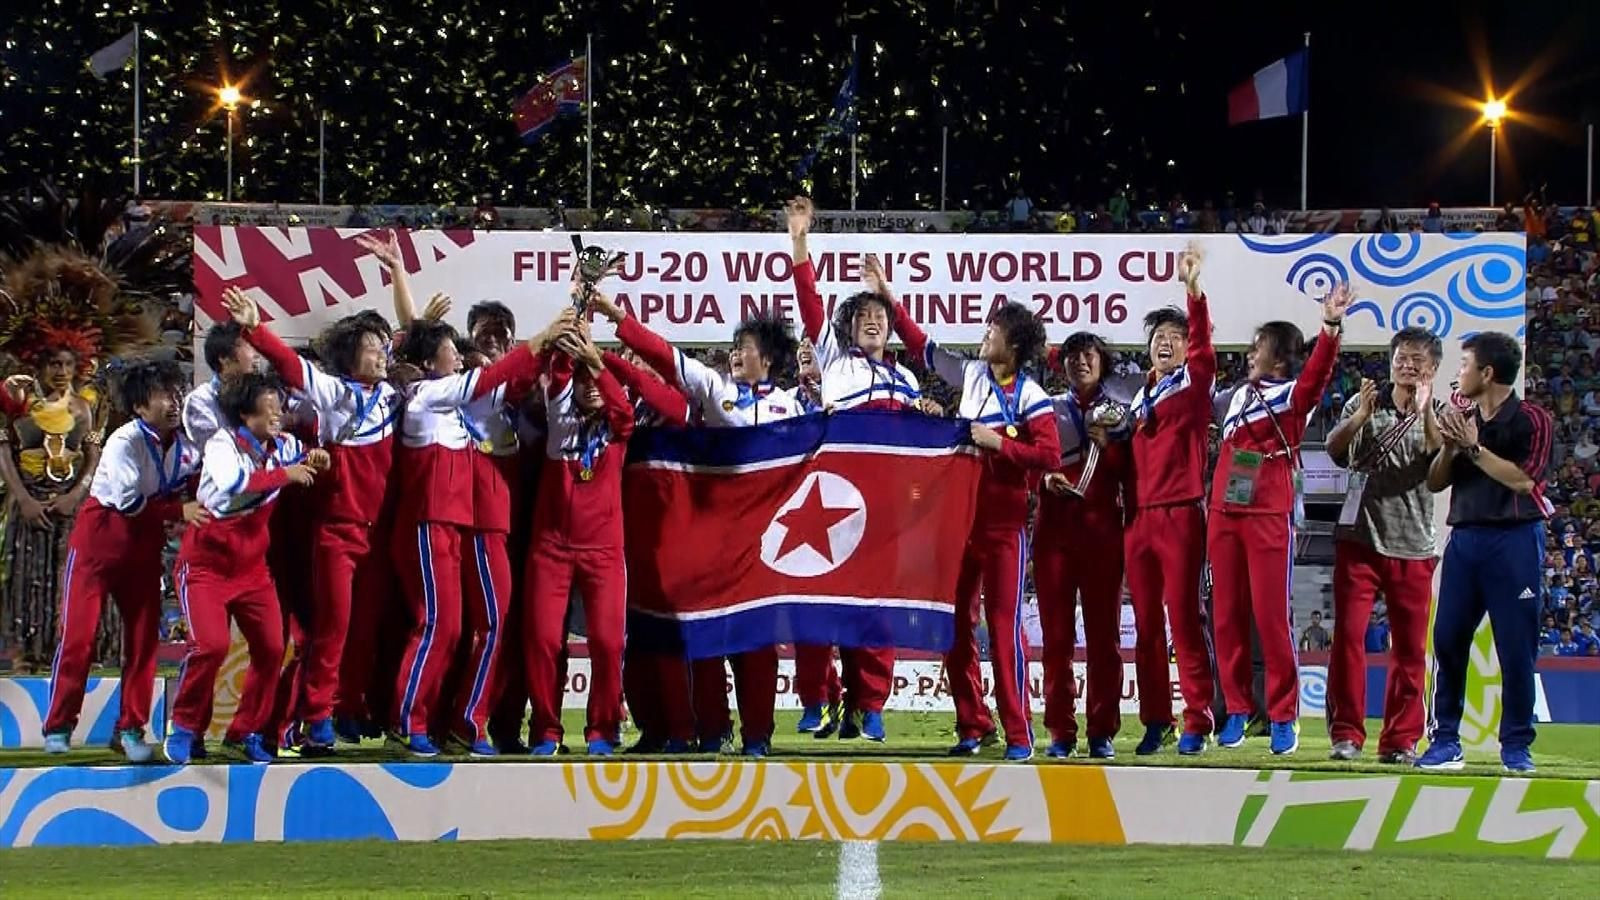 North Korea celebrate winning the FIFA Under-20 Women's World Cup in Papua New Guinea in 2016 but the tournament has since been overshadowed by allegations of corruption ©Getty Images